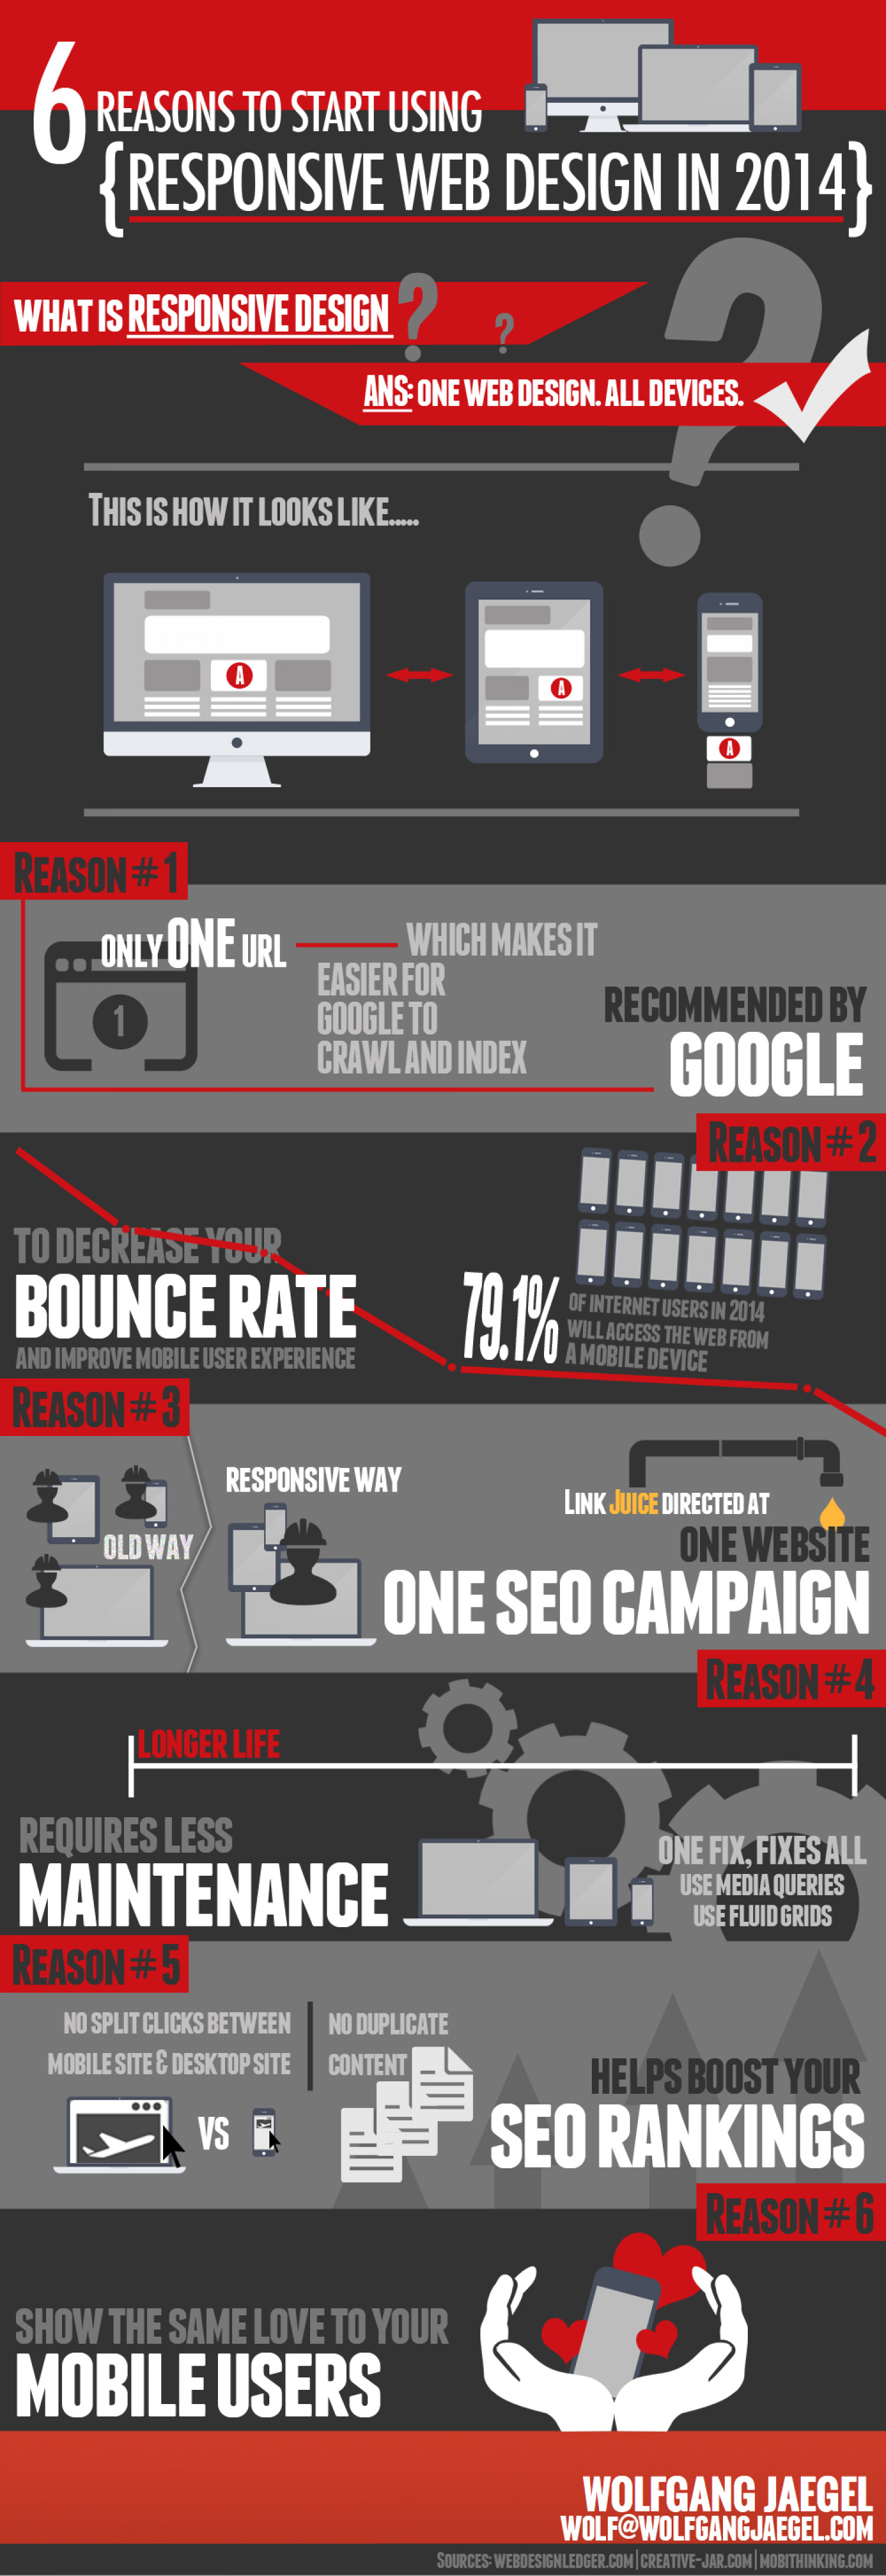 6 Reasons to Start Using Responsive Web Design in 2014 Infographic